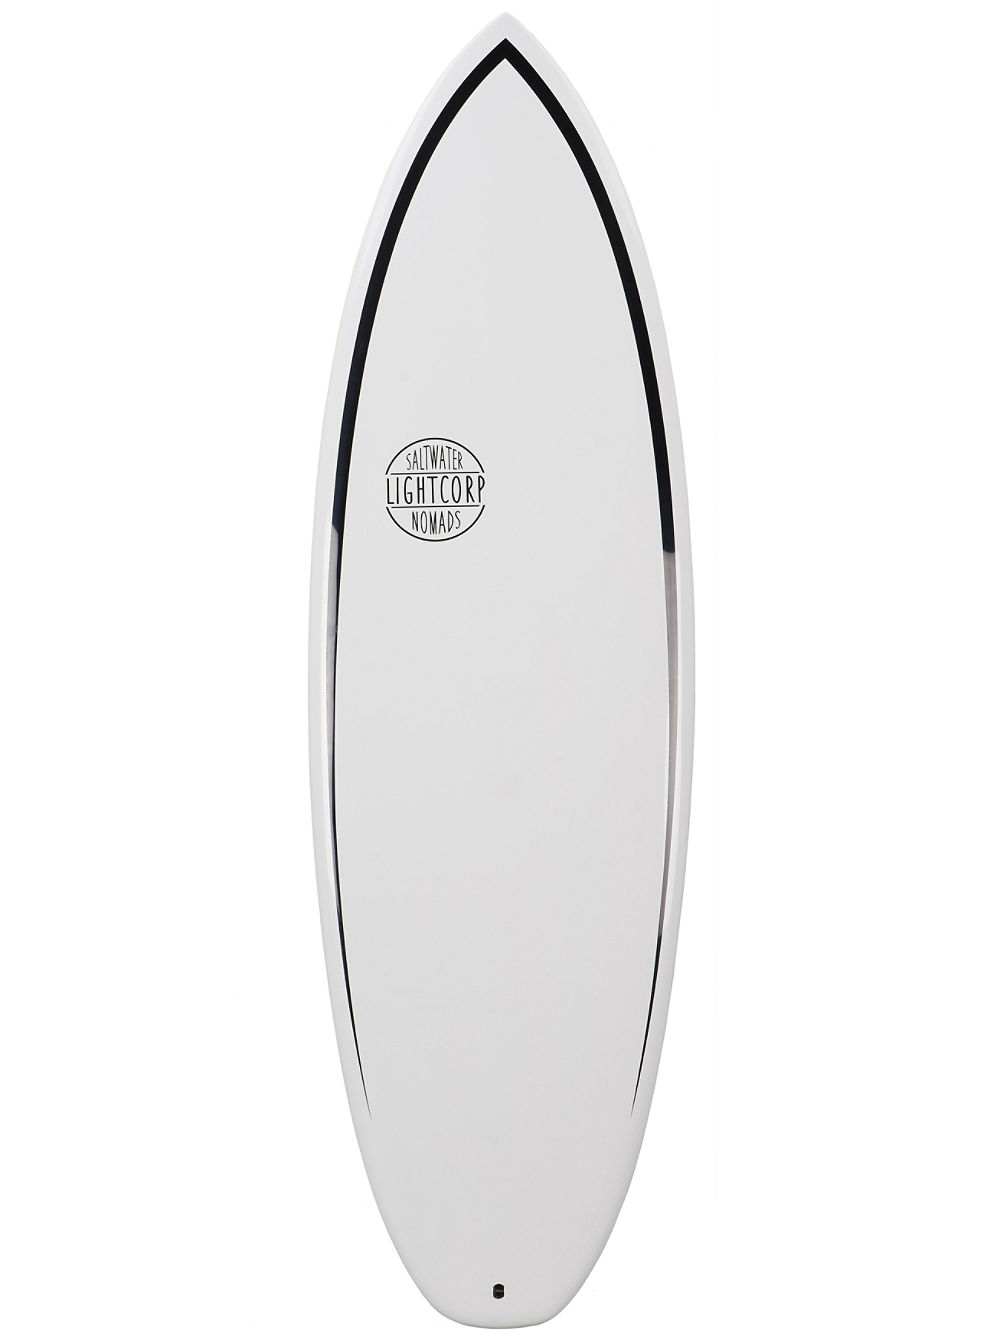 River2'0 Epoxy Future 5'4